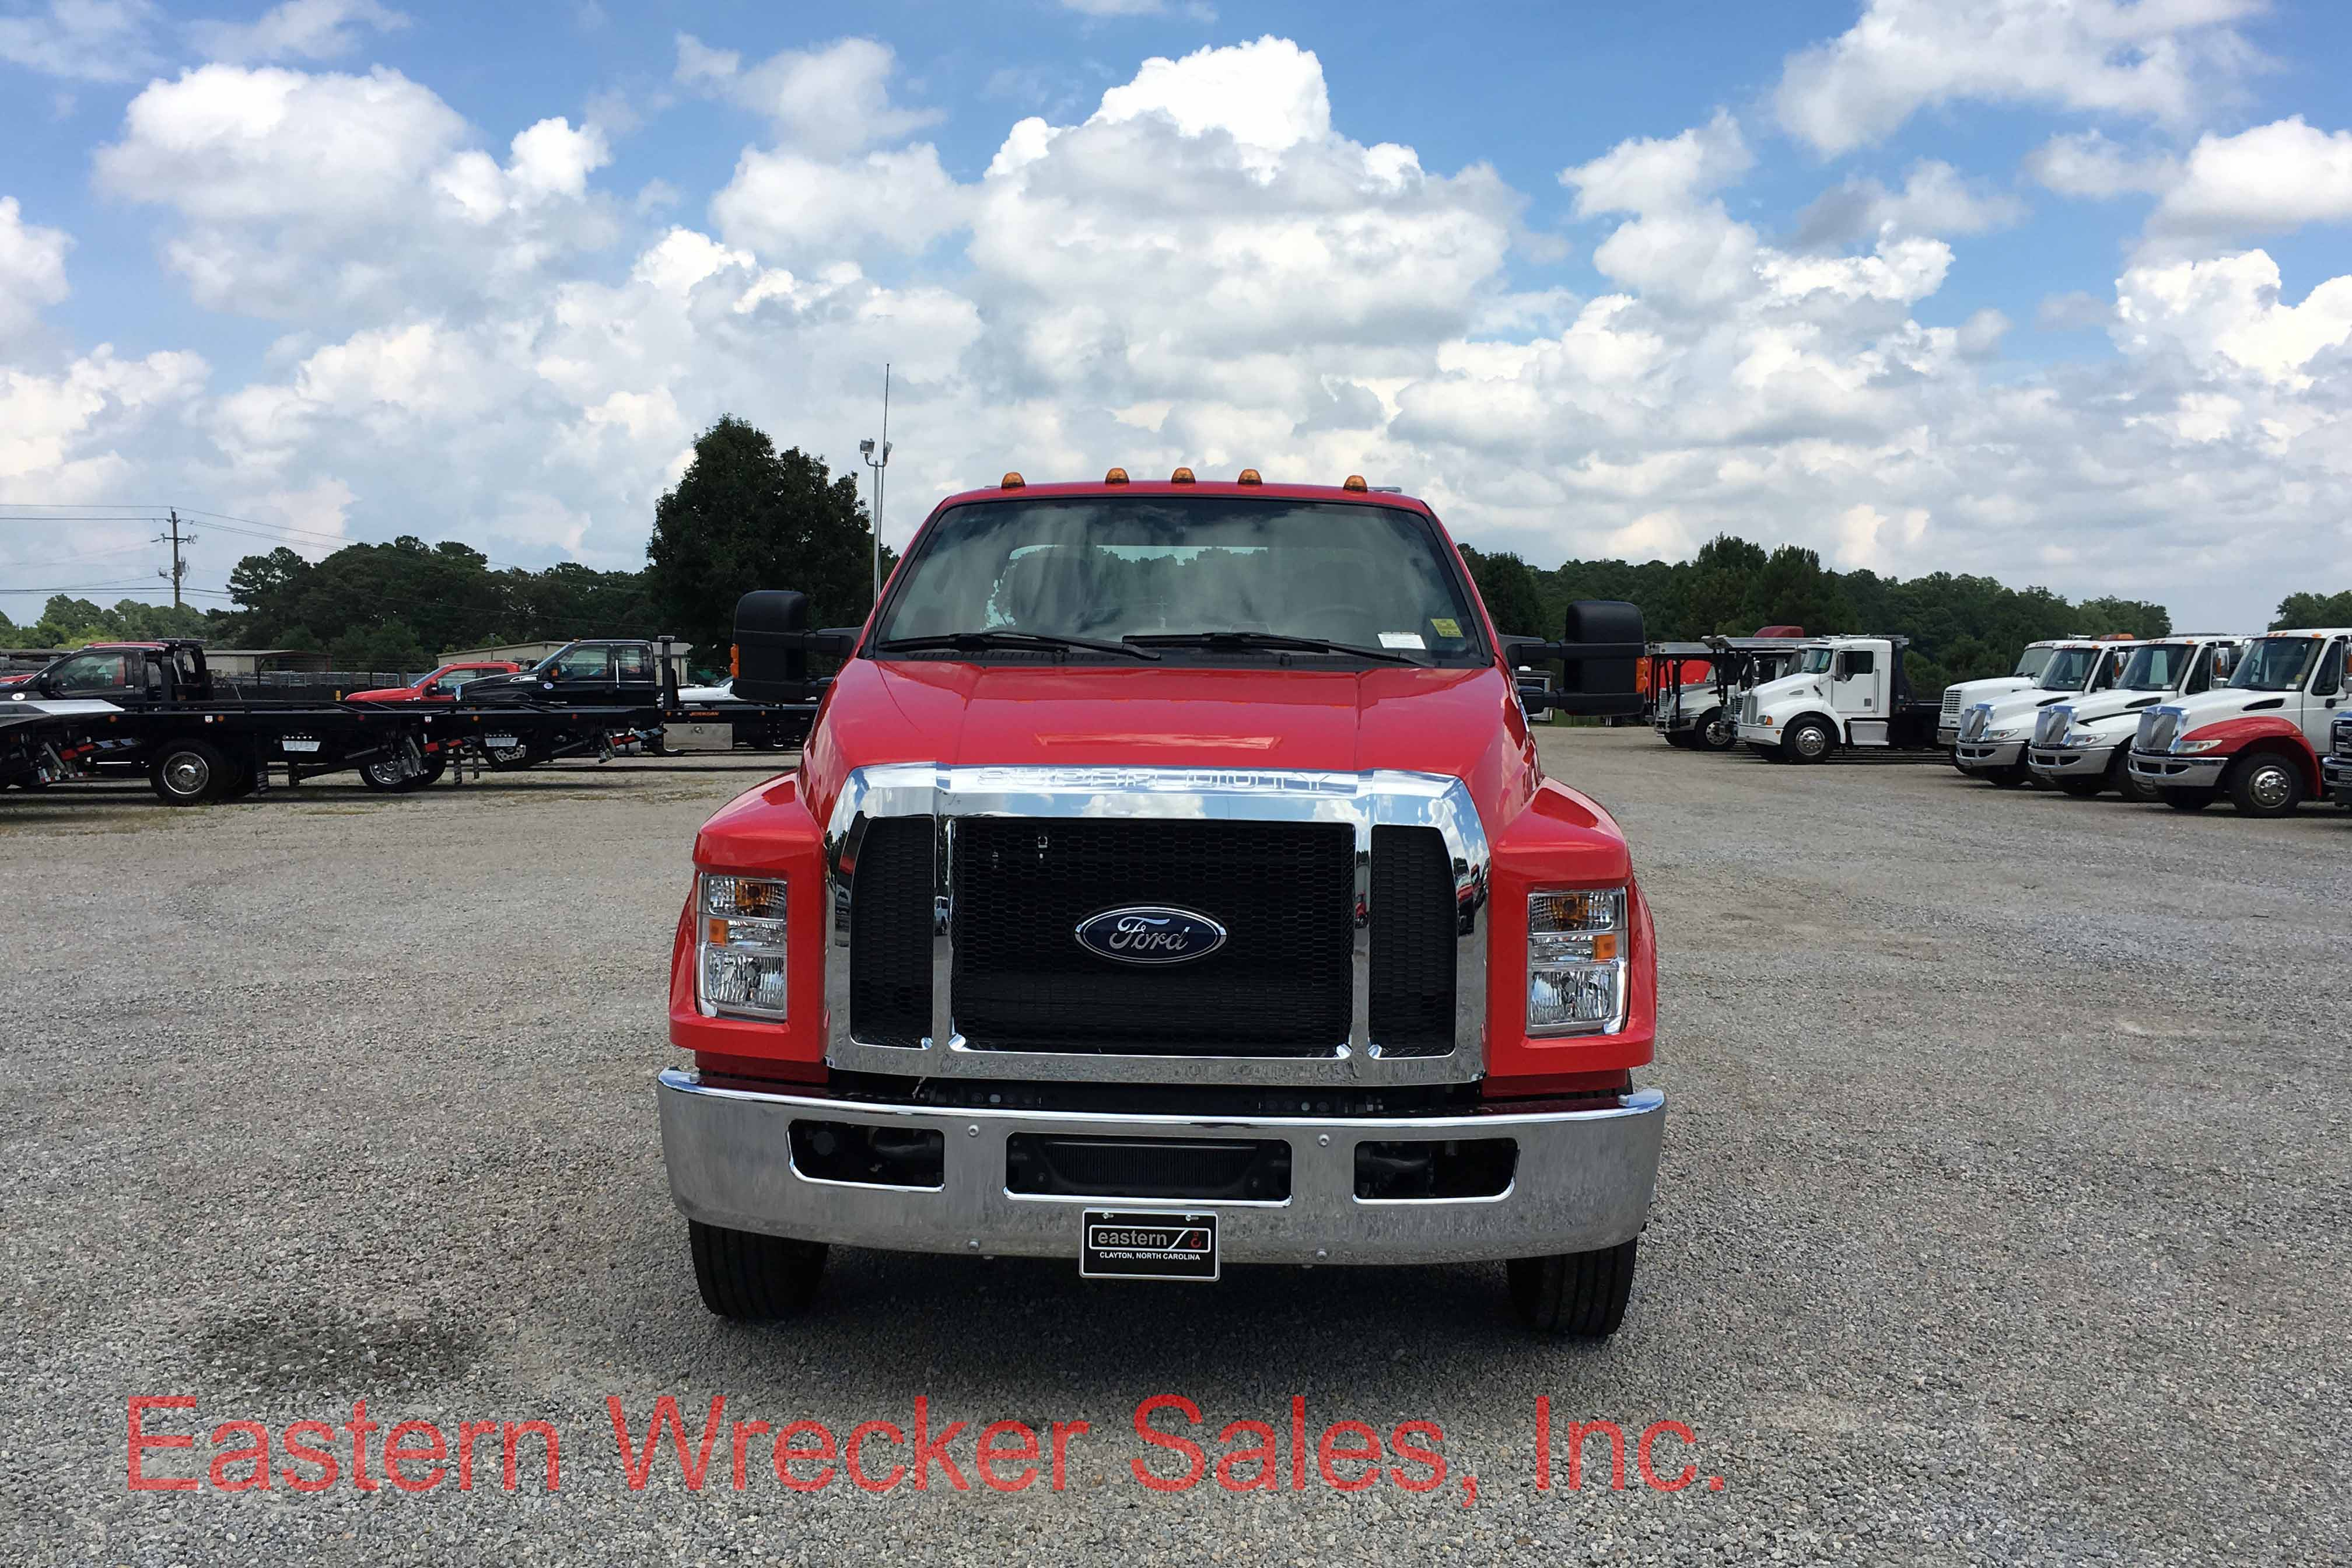 Ford F650 Wrecker For Sale